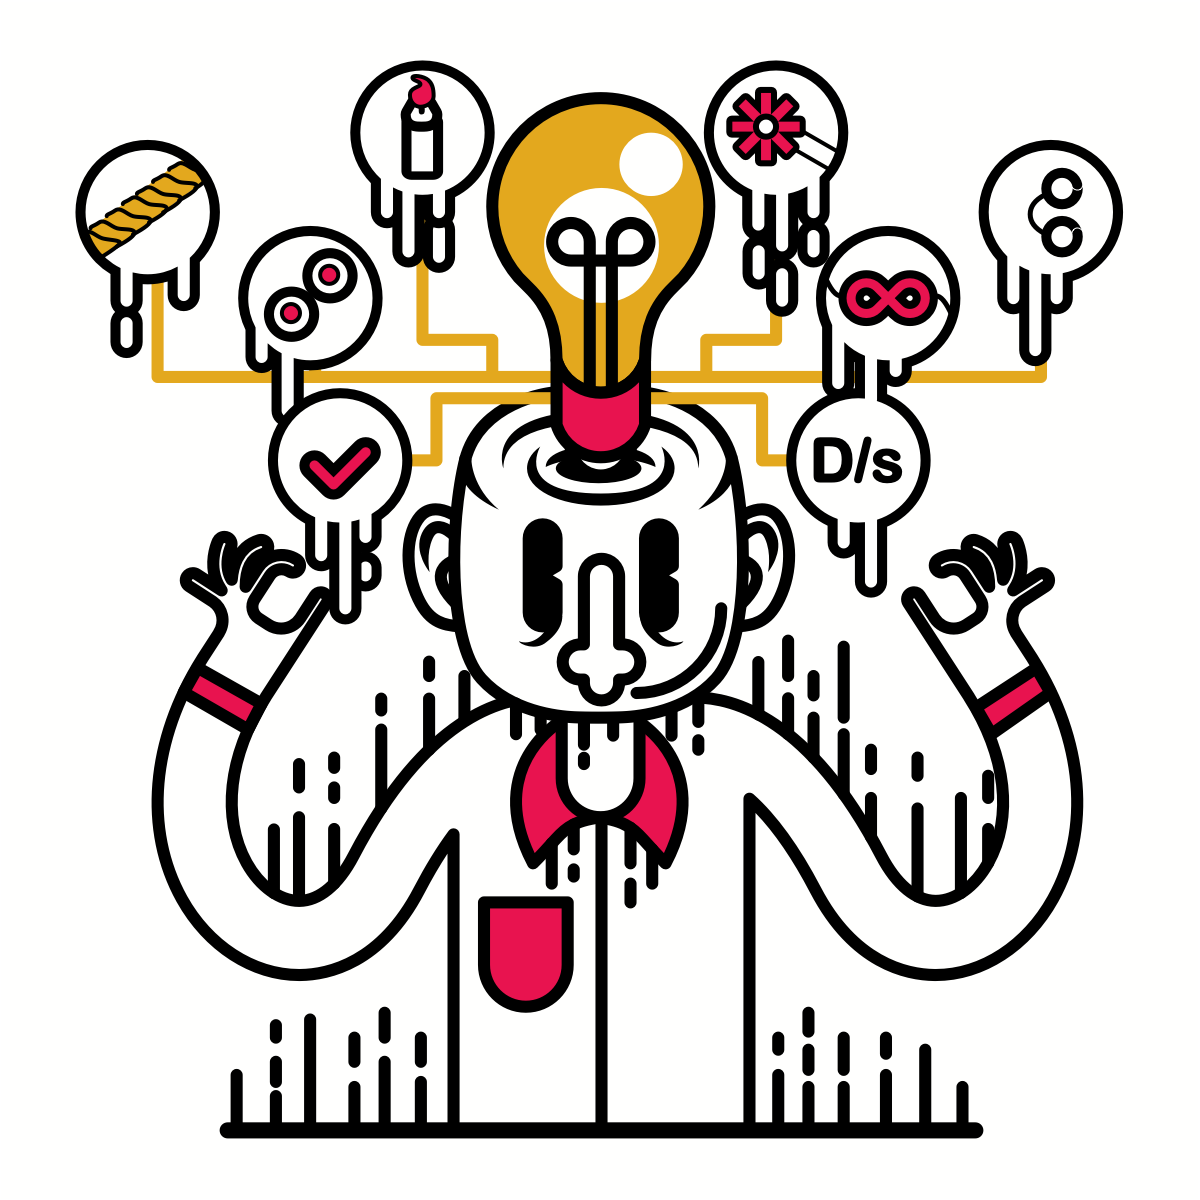 A cartoon person with a myriad of ideas floating around his head, including D/s, a candle, handcuffs, rope and more.